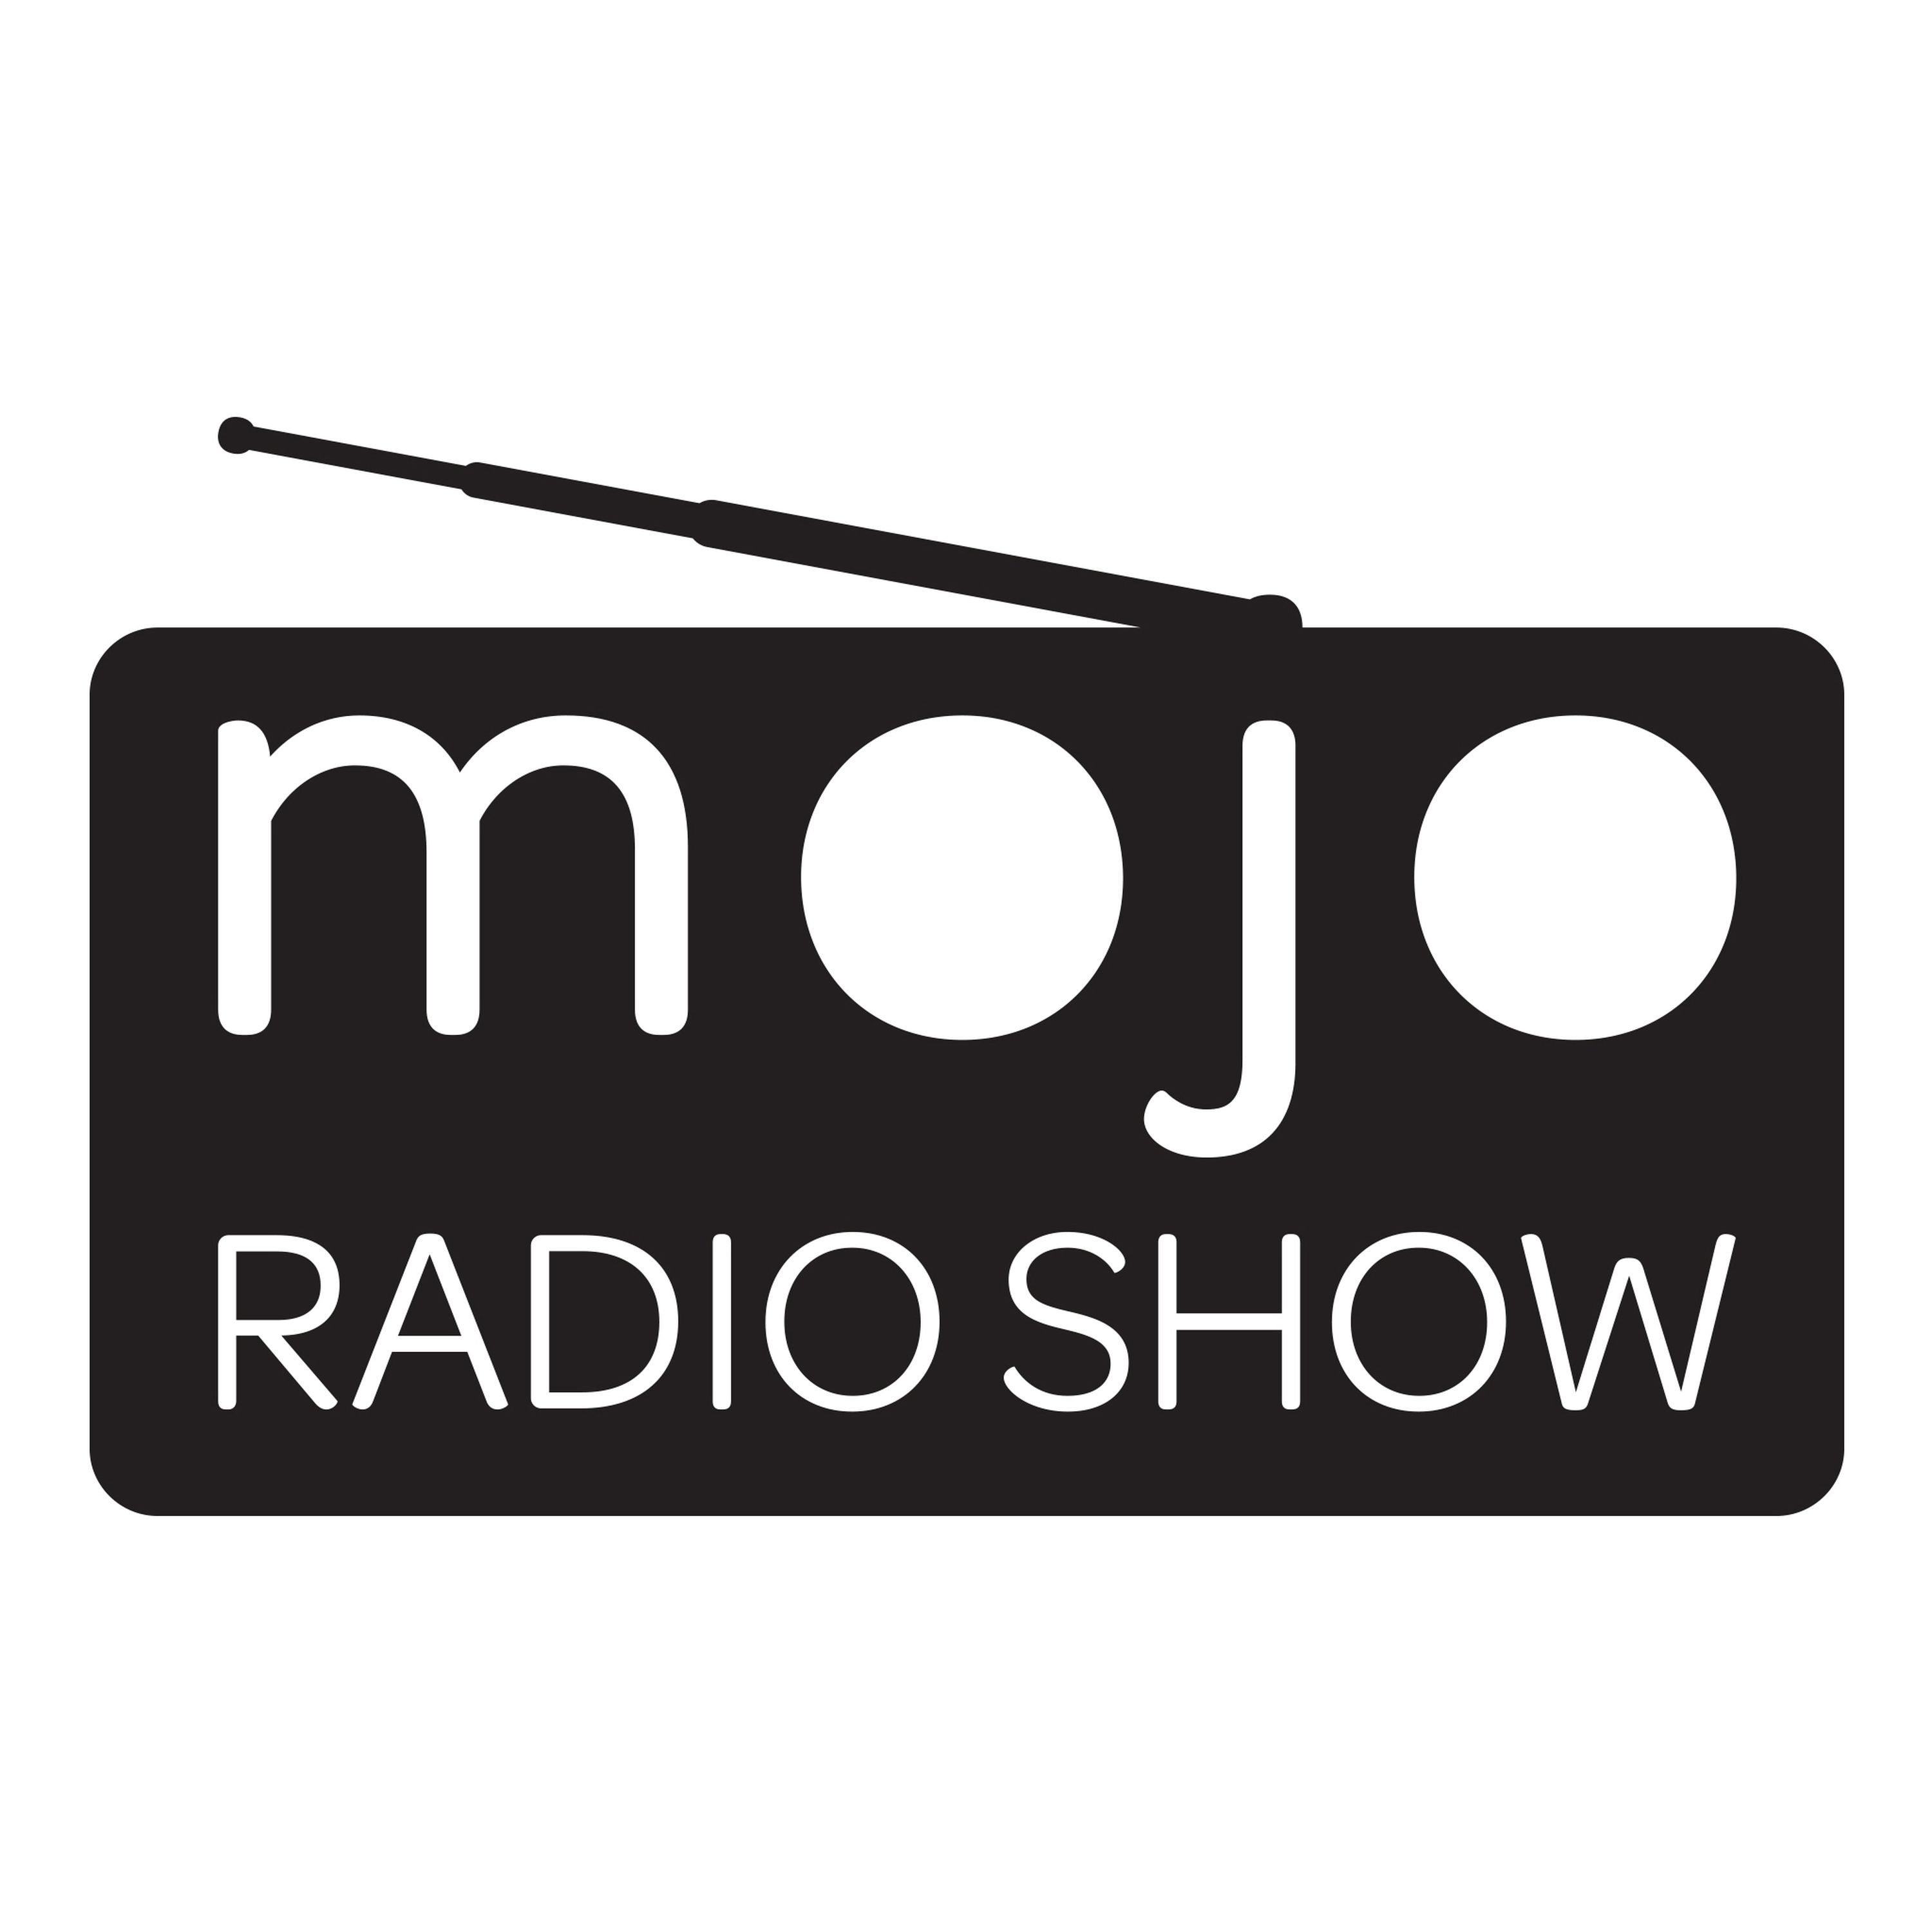 The Mojo Radio Show EP 266: Essential Skills To Market Your Company Through Digital - Daniel Rowles